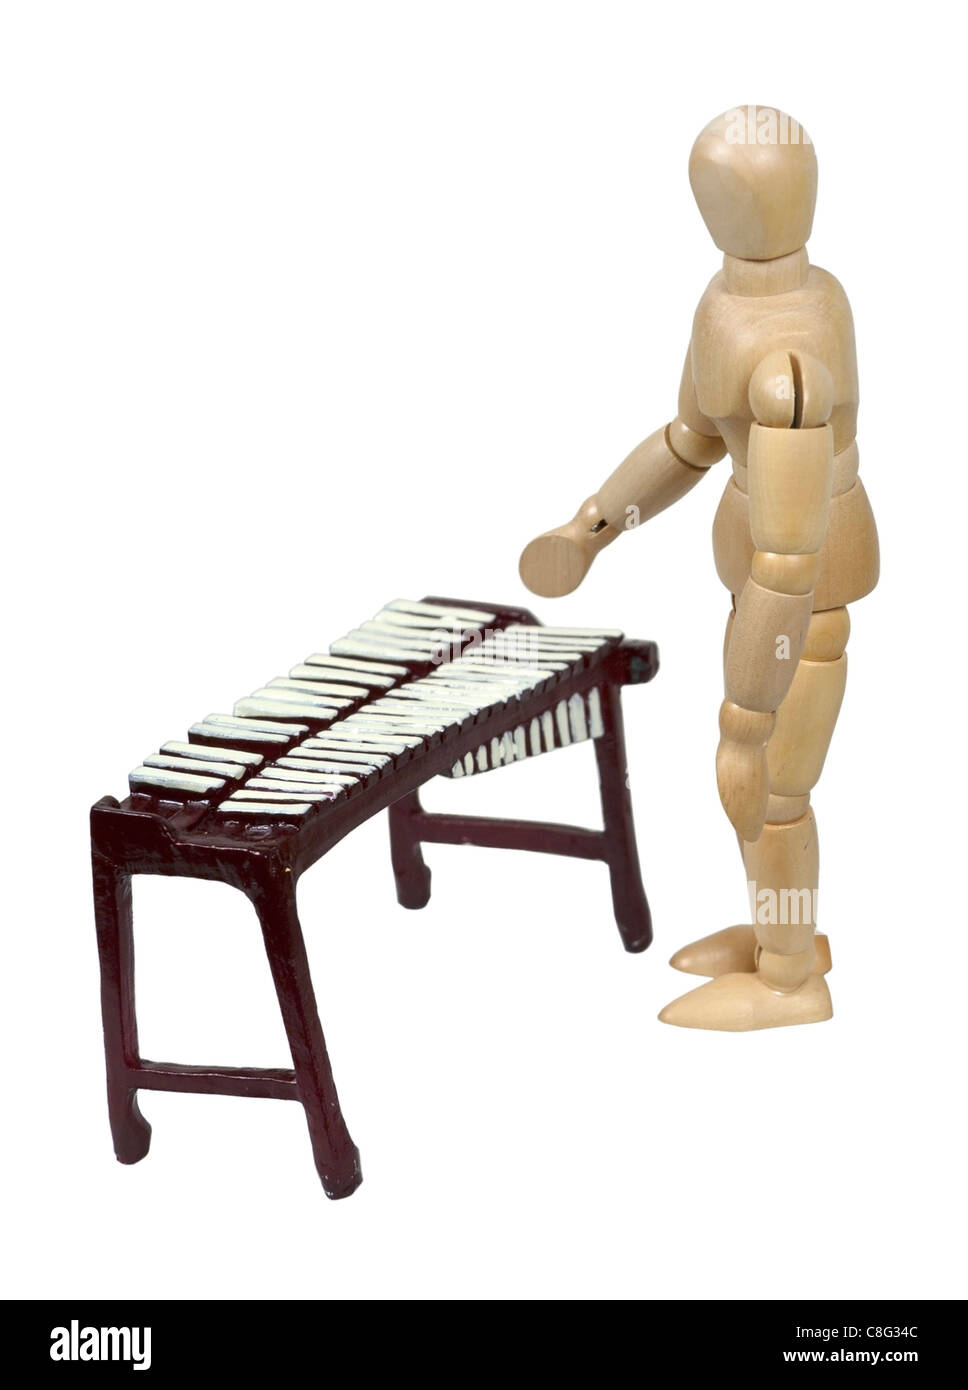 Playing a marimba musical instrument - path included - Stock Image